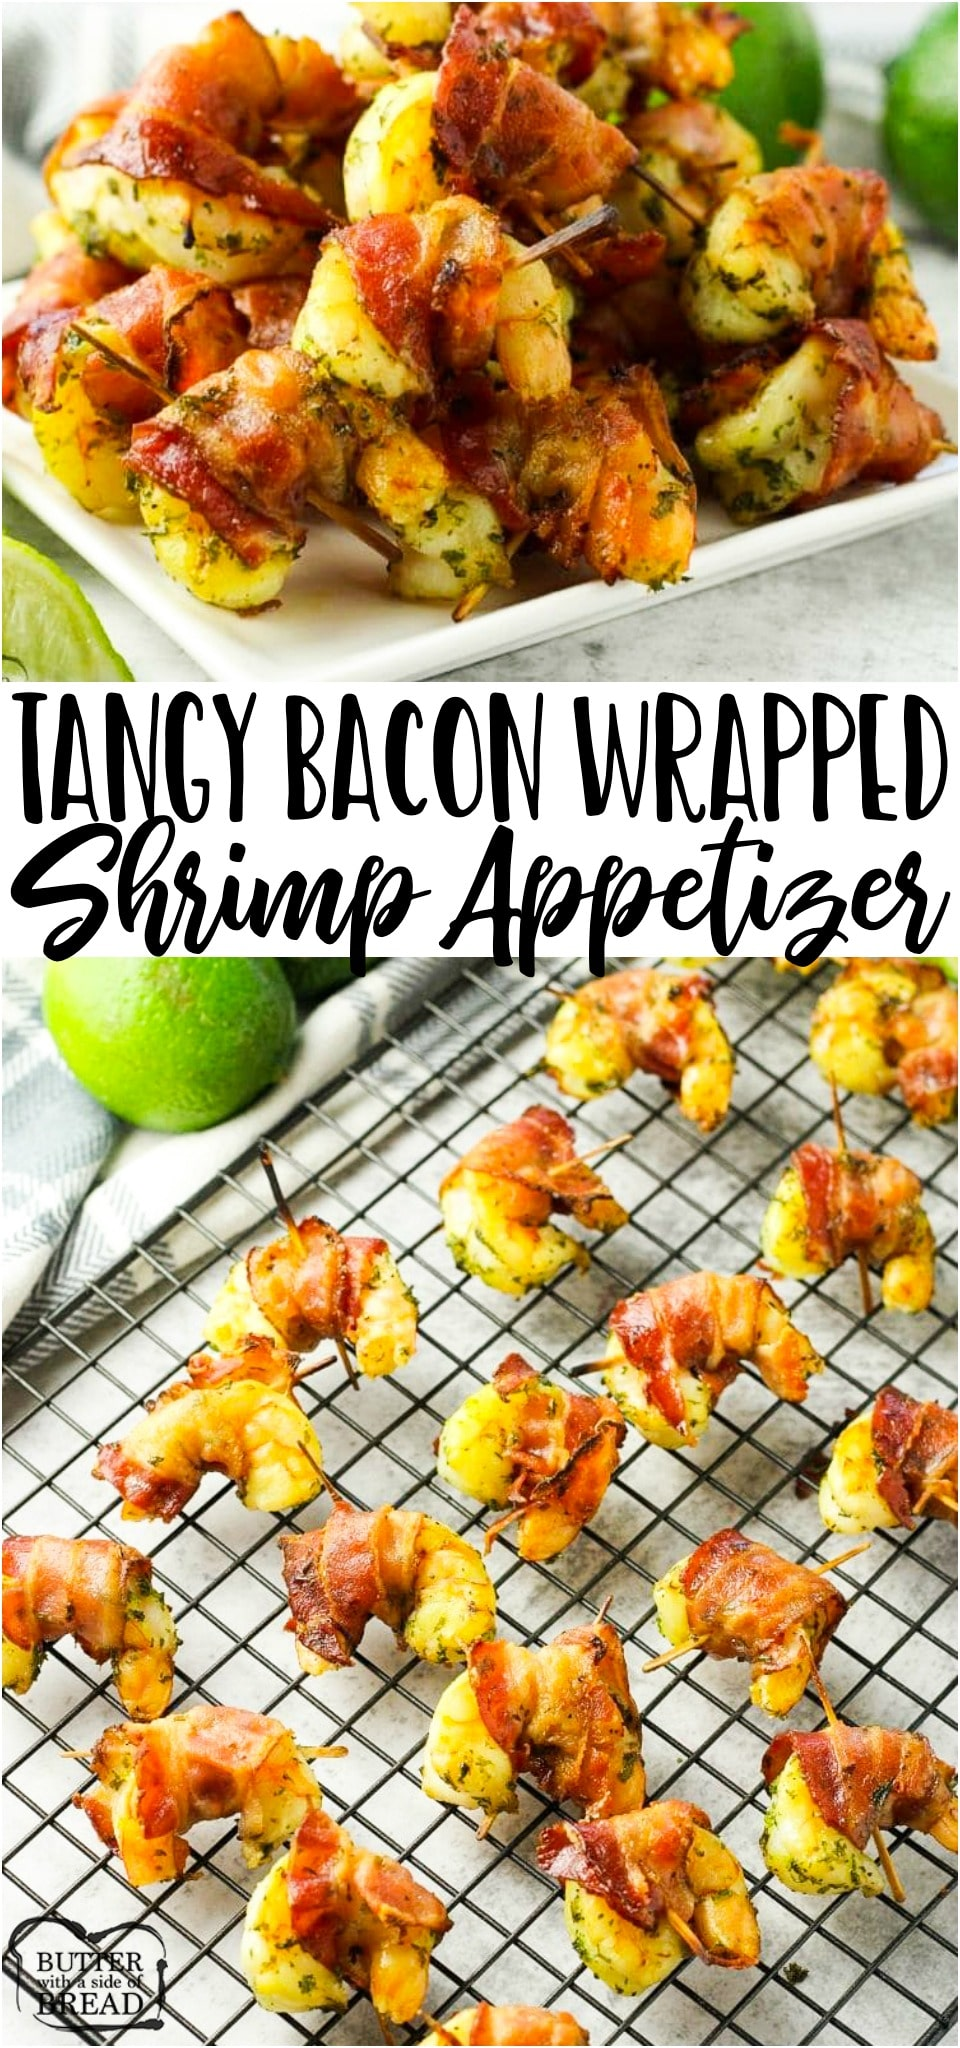 Bacon Wrapped Shrimp is a simple appetizer that only takes 6 ingredients & minutes to cook. This bacon wrapped shrimp recipe is a delicious combination of tangy lime & savory shrimp and bacon. #shrimp #bacon #appetizer #easyrecipe from BUTTER WITH A SIDE OF BREAD